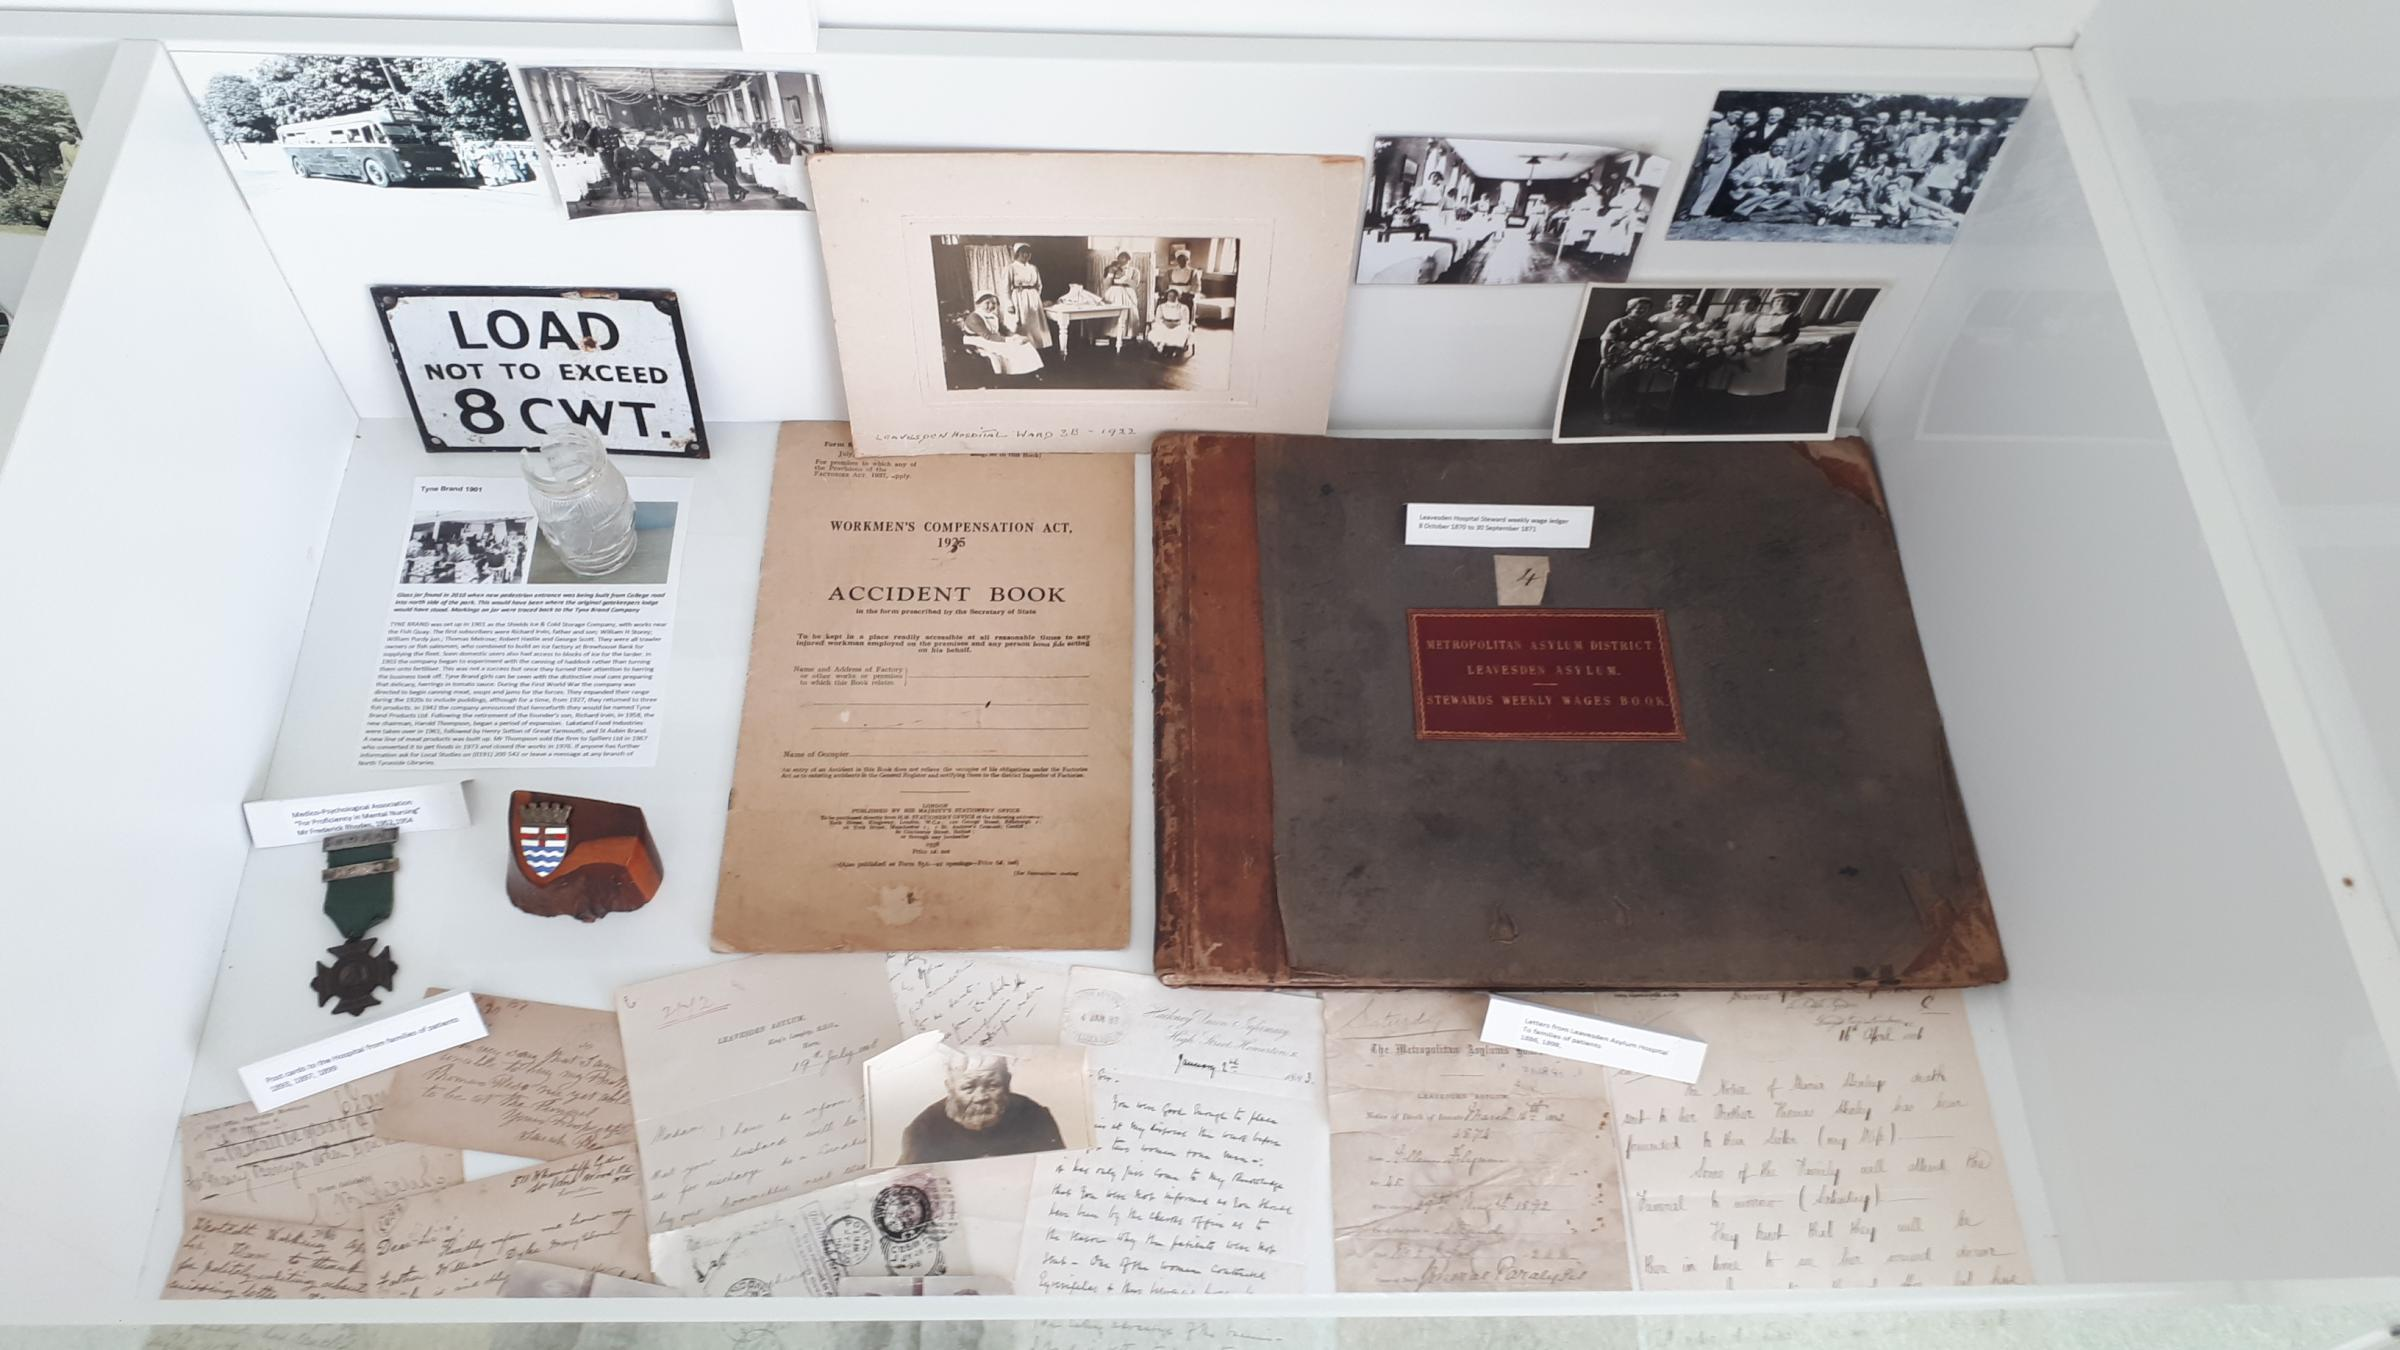 Leavesden Asylum/Hospital artifacts on display at the HIVE heritage centre Leavesden Country Park. 2020